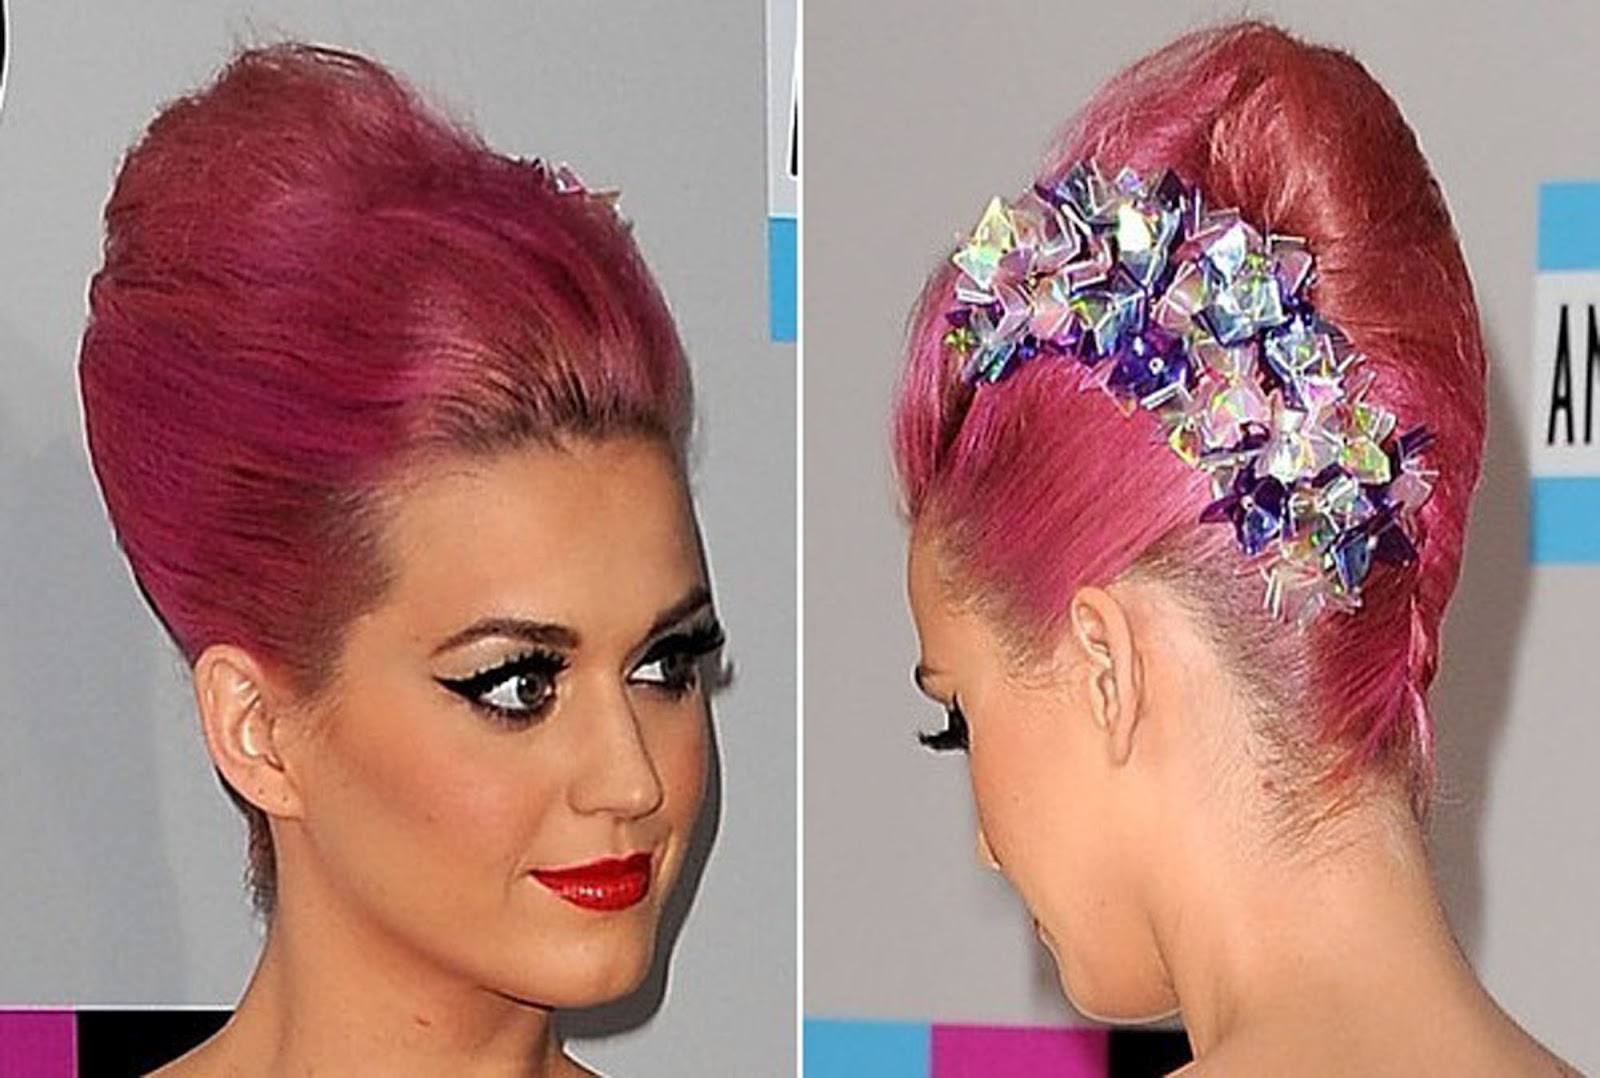 http://2.bp.blogspot.com/-SwXo_UjyMoc/UAXH3H-jJlI/AAAAAAAABUw/-x6u0Mj2XZk/s1600/Katy-Perry-French-Twist-with-Cute-accessories-Hair-as-Formal-Hairstyles-with-Color-Lock.jpg